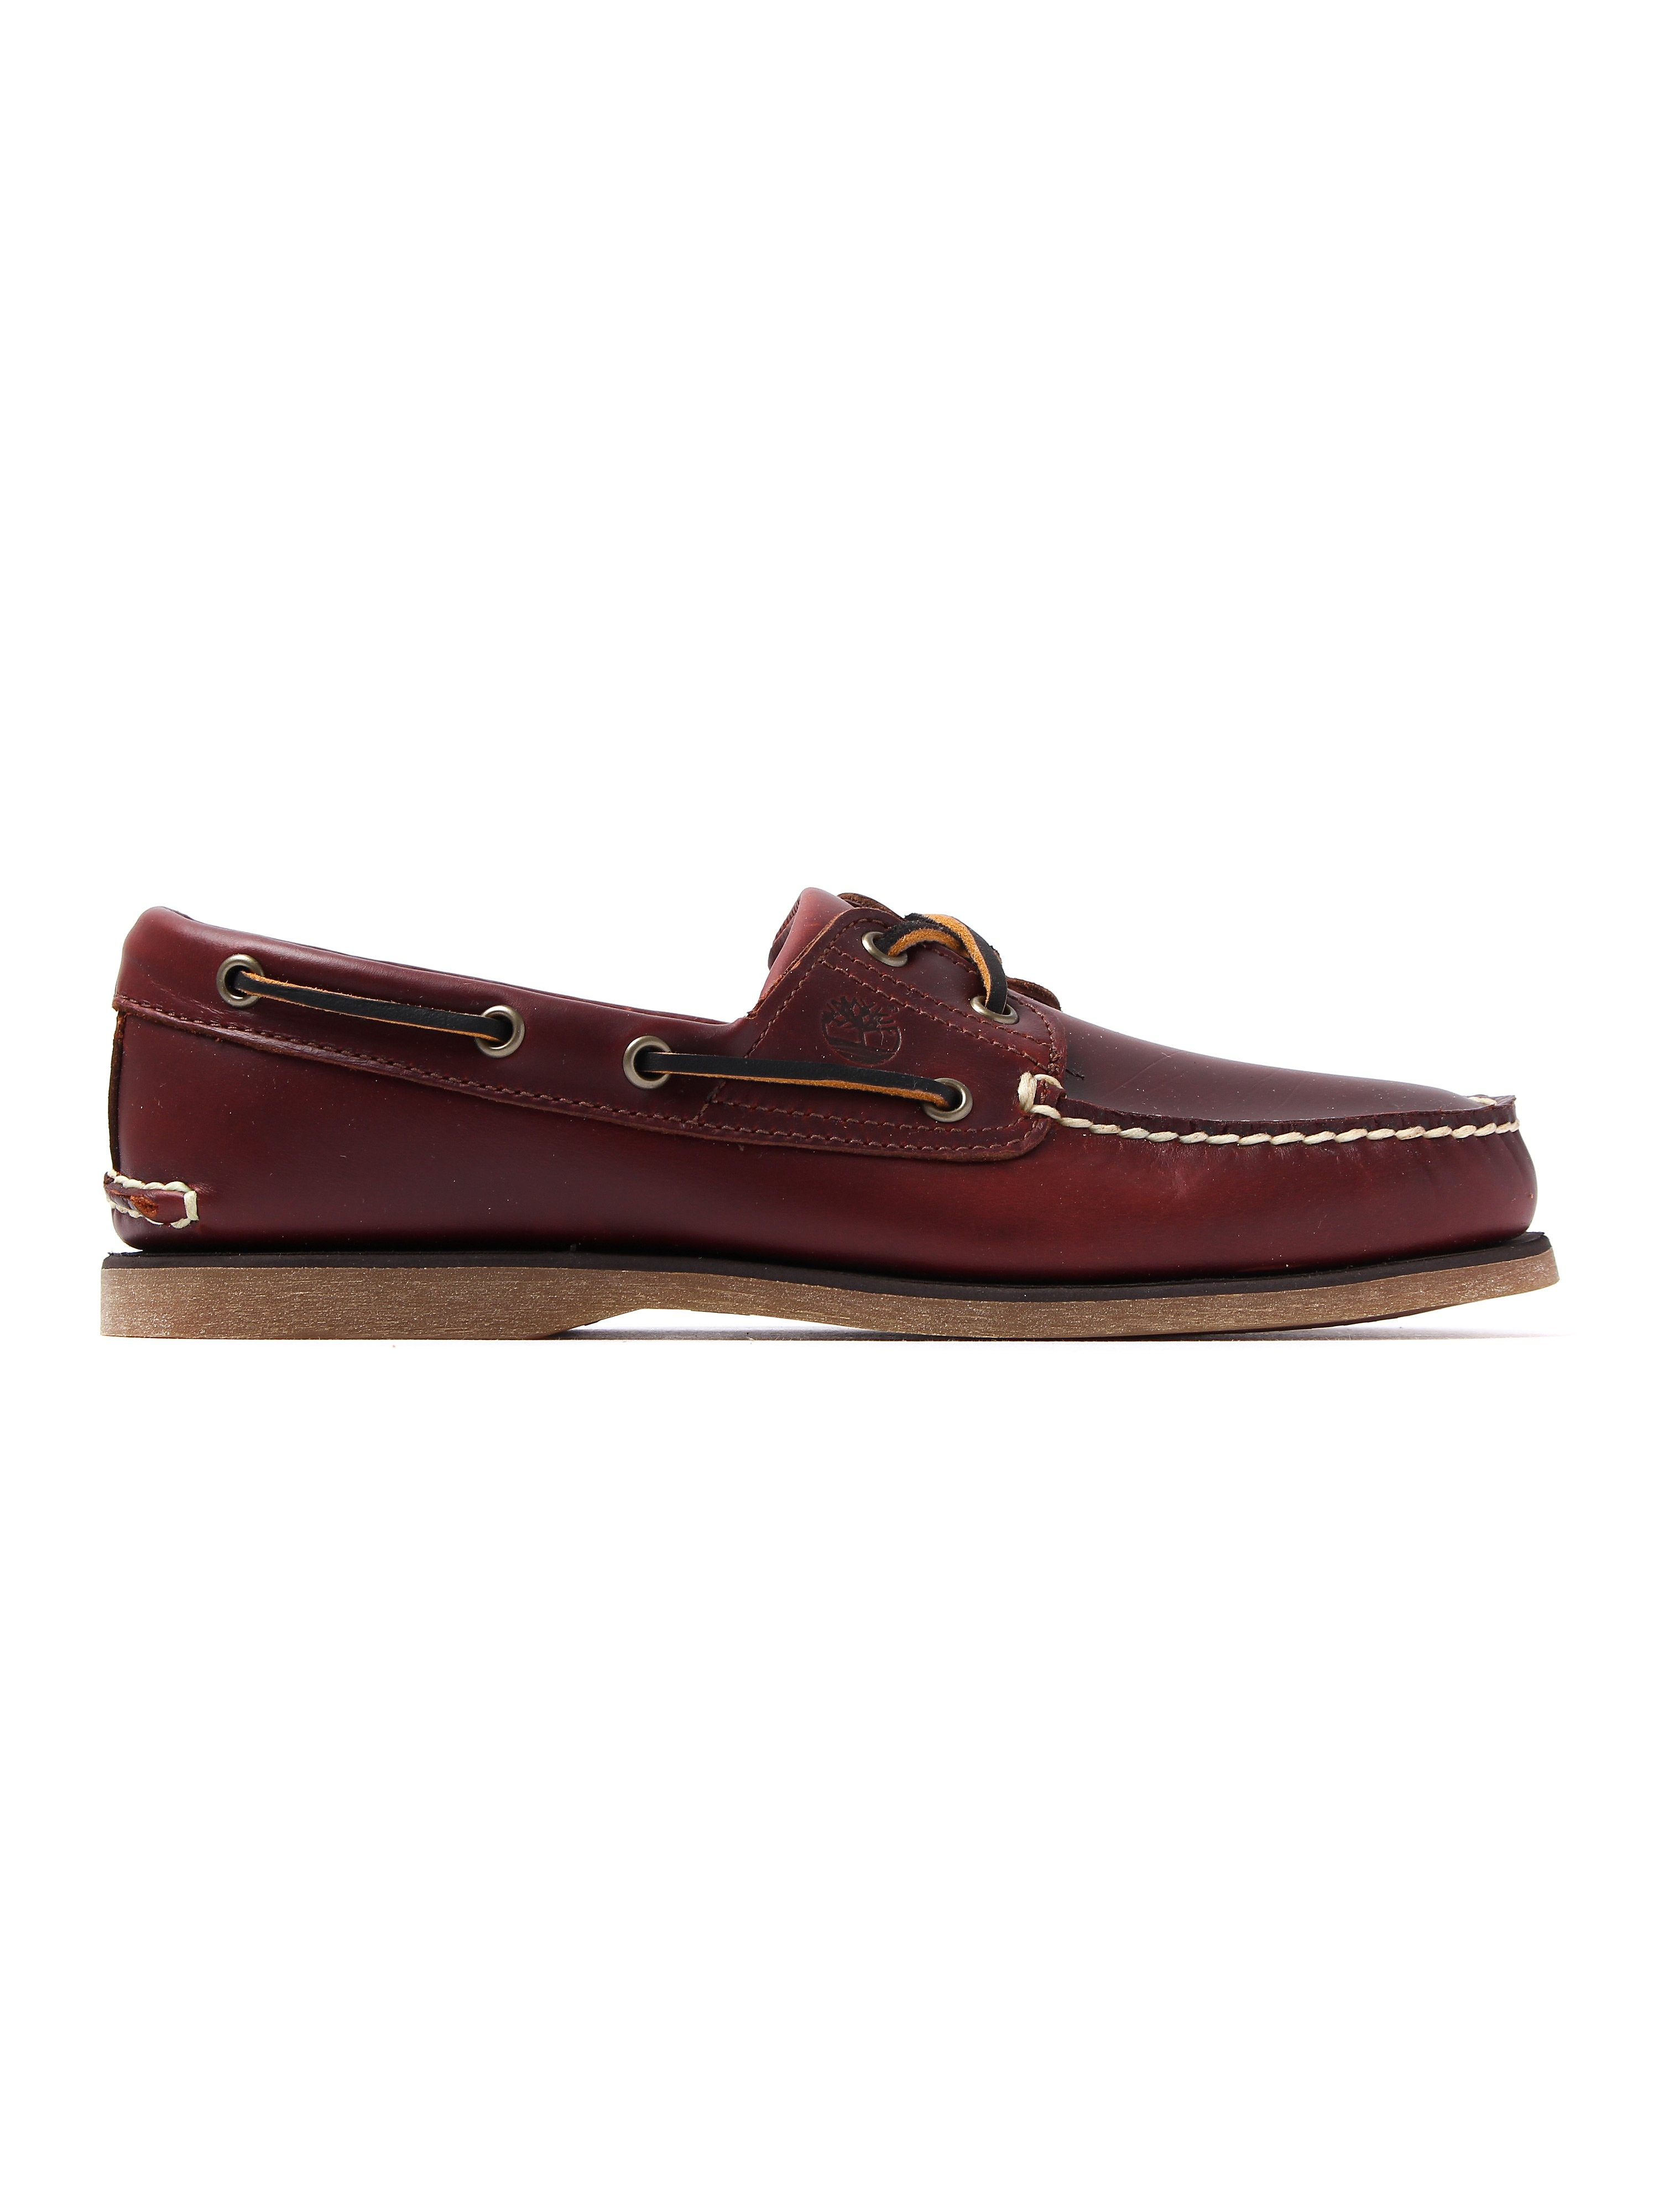 Timberland Men's Rootbeer 2 Eye Boat Shoes - Rootbeer Red